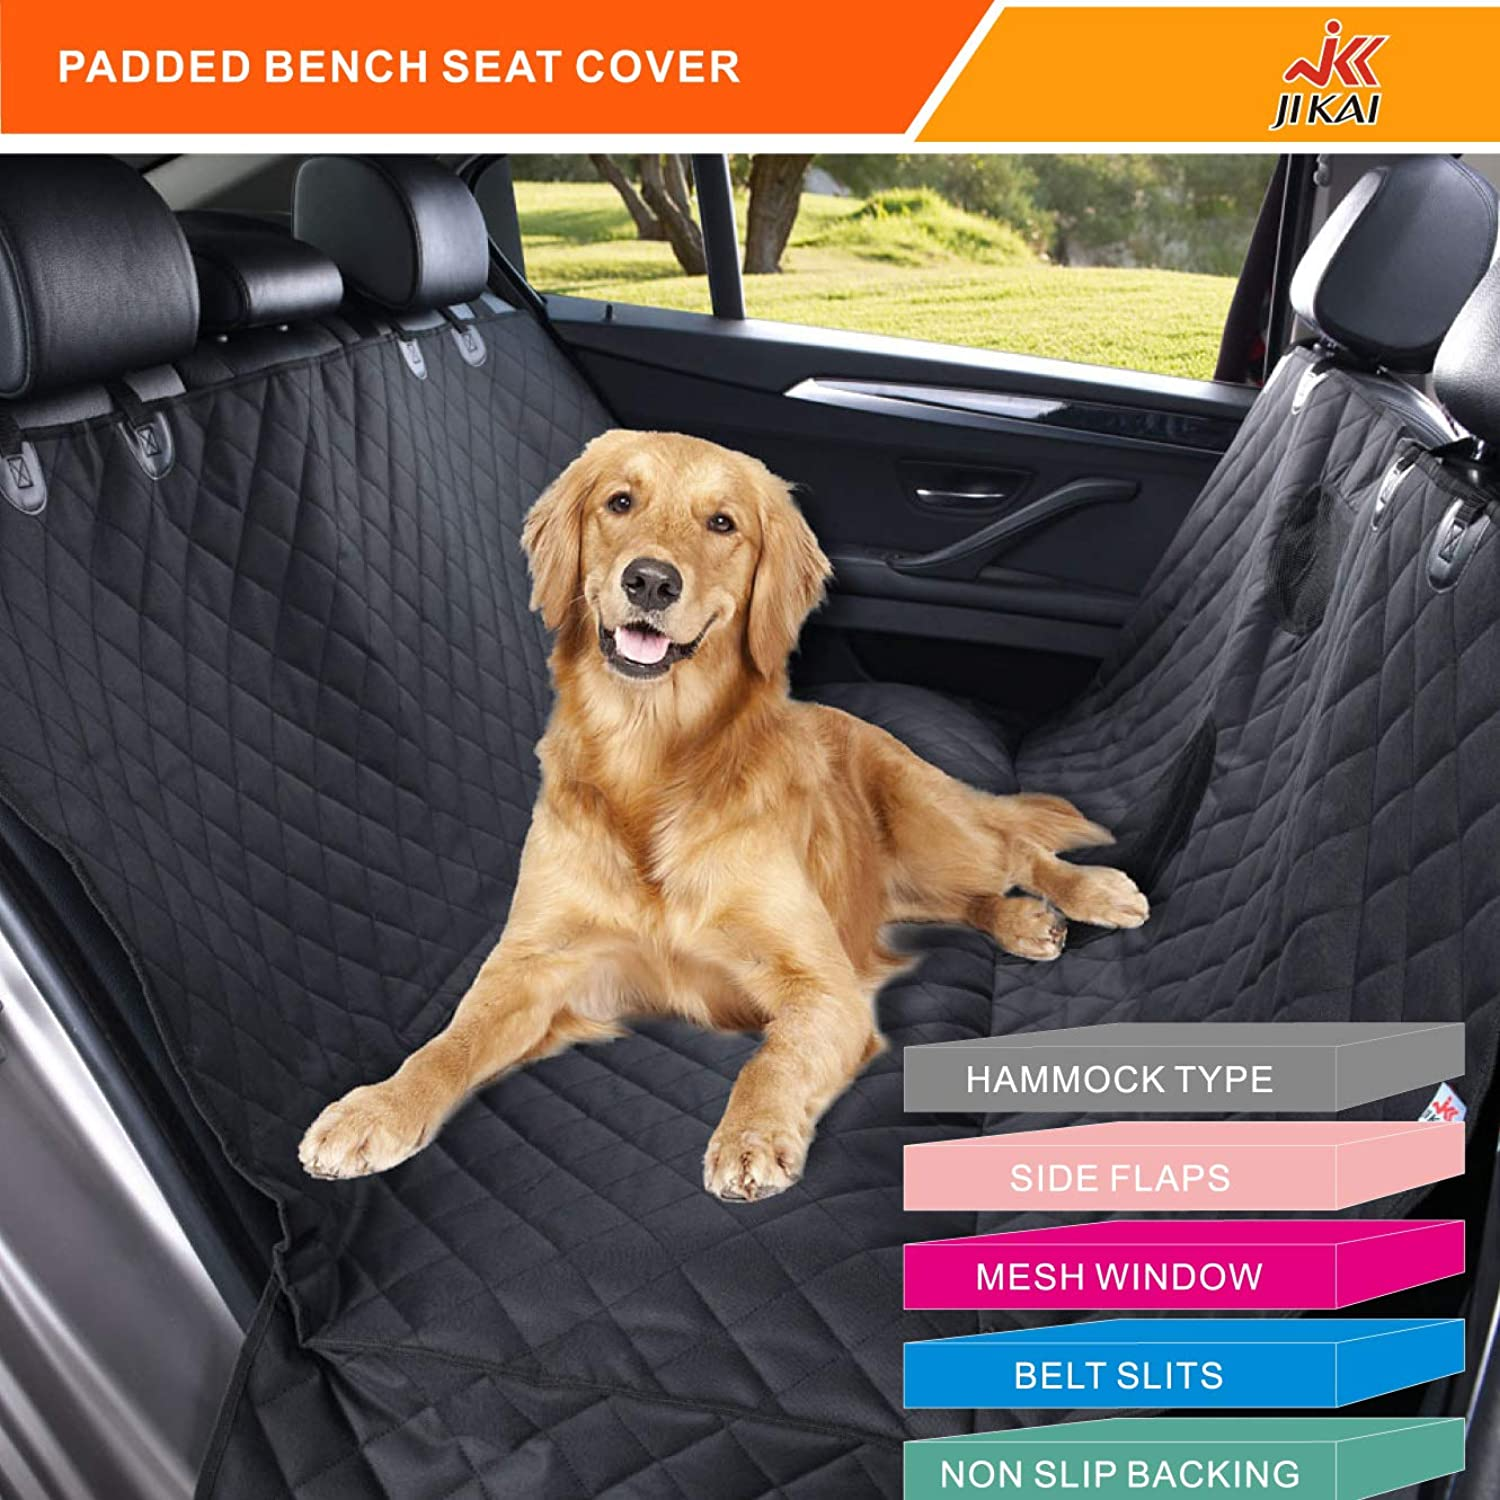 JK JI KAI Pet Seat Cover for Dog Suitable for Back seat of Trucks SUV Trunk Hammock and Waterproof in Complete Padded 600d Oxford (6064 inches, Black)